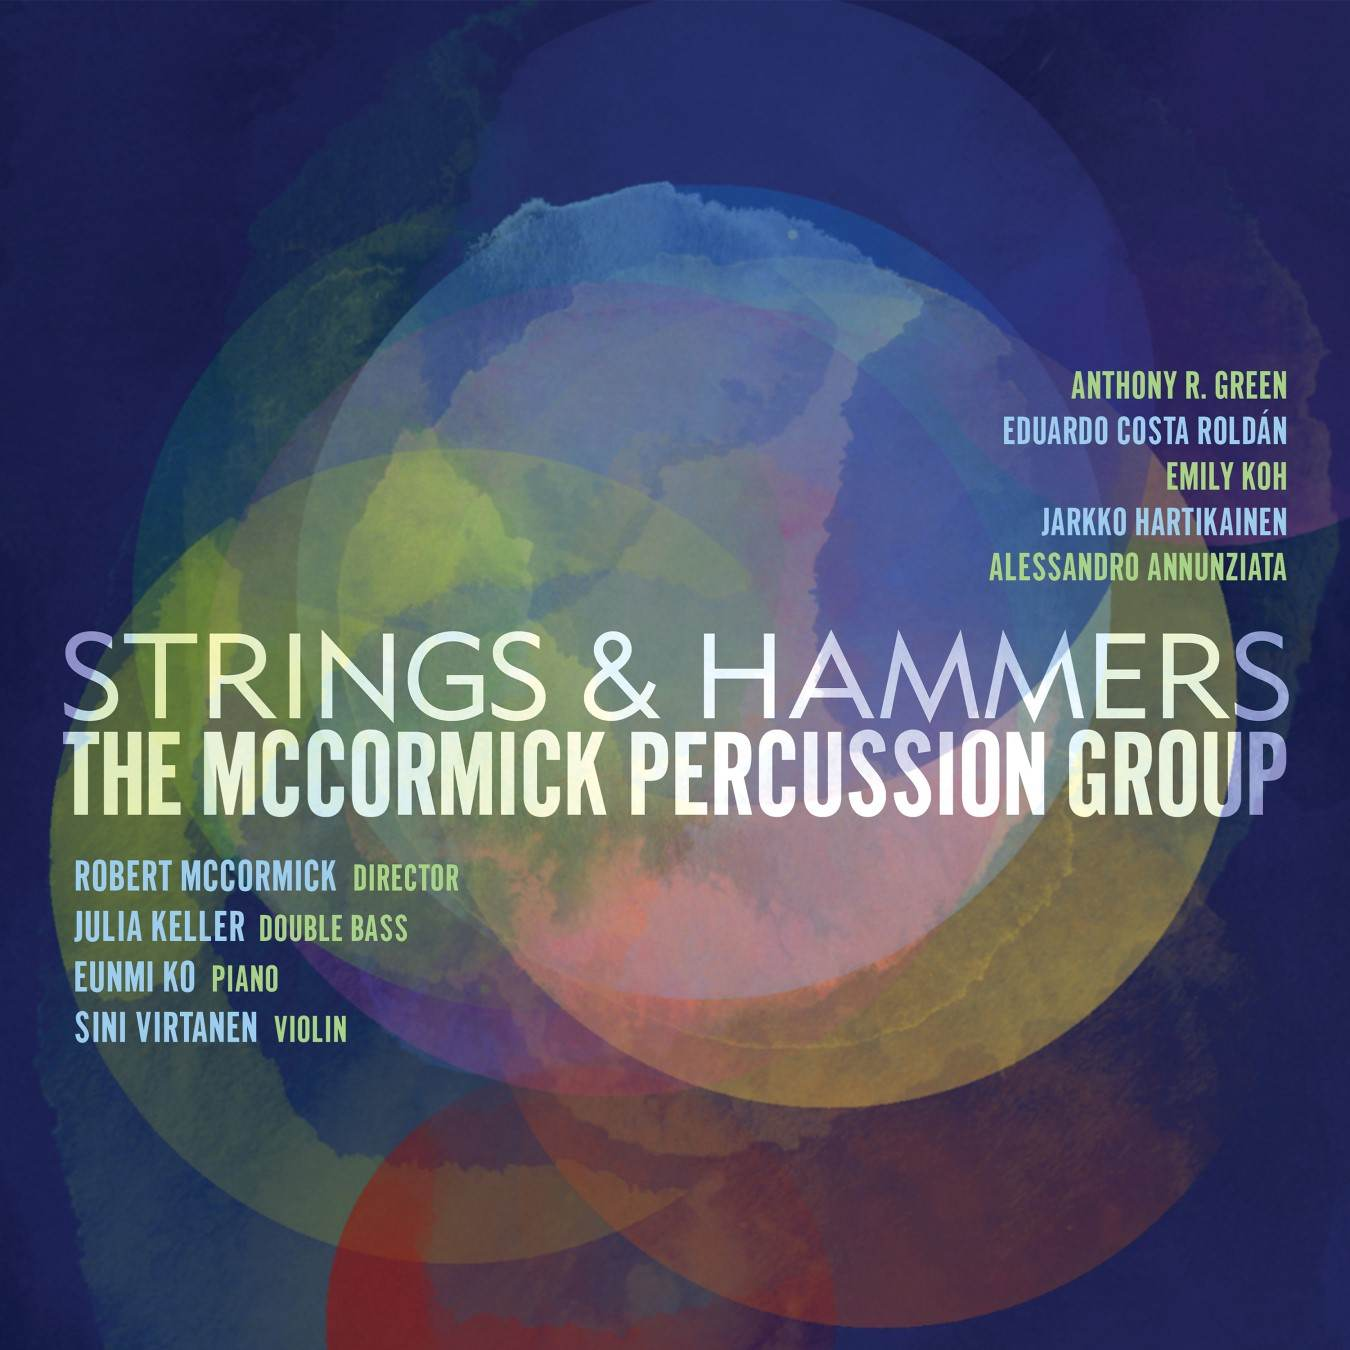 Strings & Hammers - McCormick Percussion Group - Album Cover